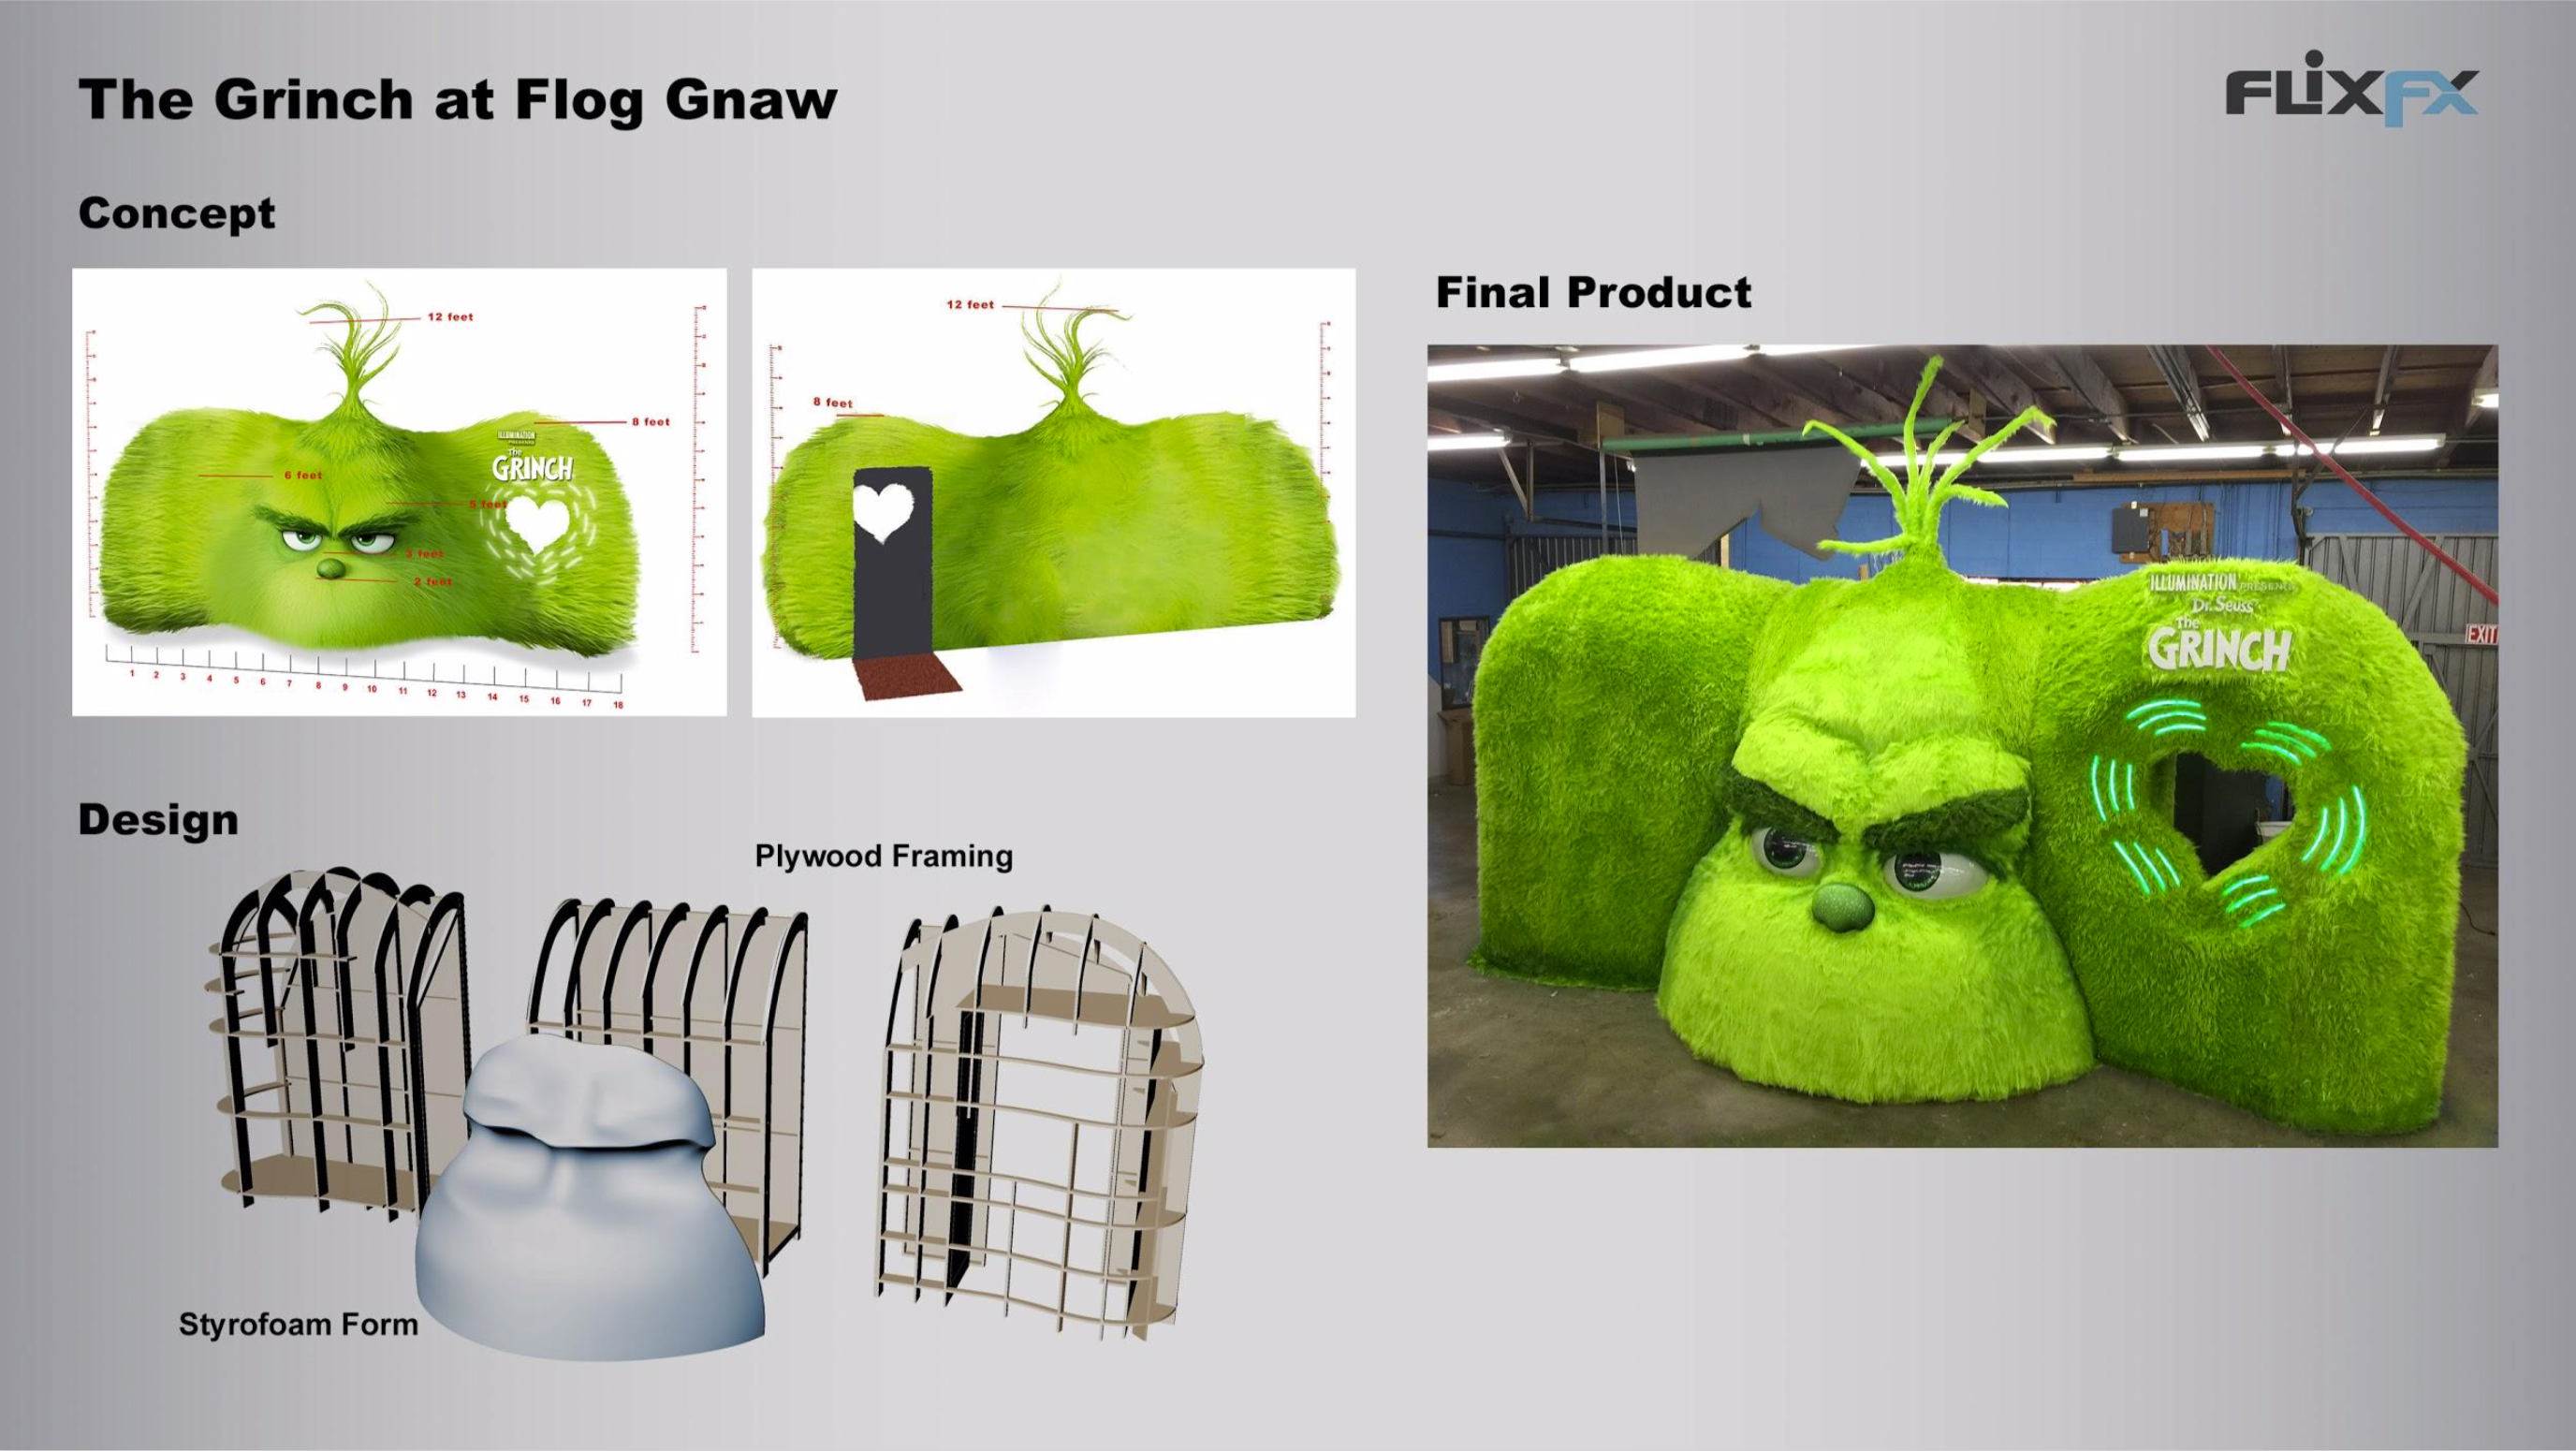 Grinch: 3D Design, CNC Milling, Vacuforming, Acrylic Fabrication, Vacuforming, Flat Bed Printing, Scenic Paint, Metal Fabrication & Carpentry.